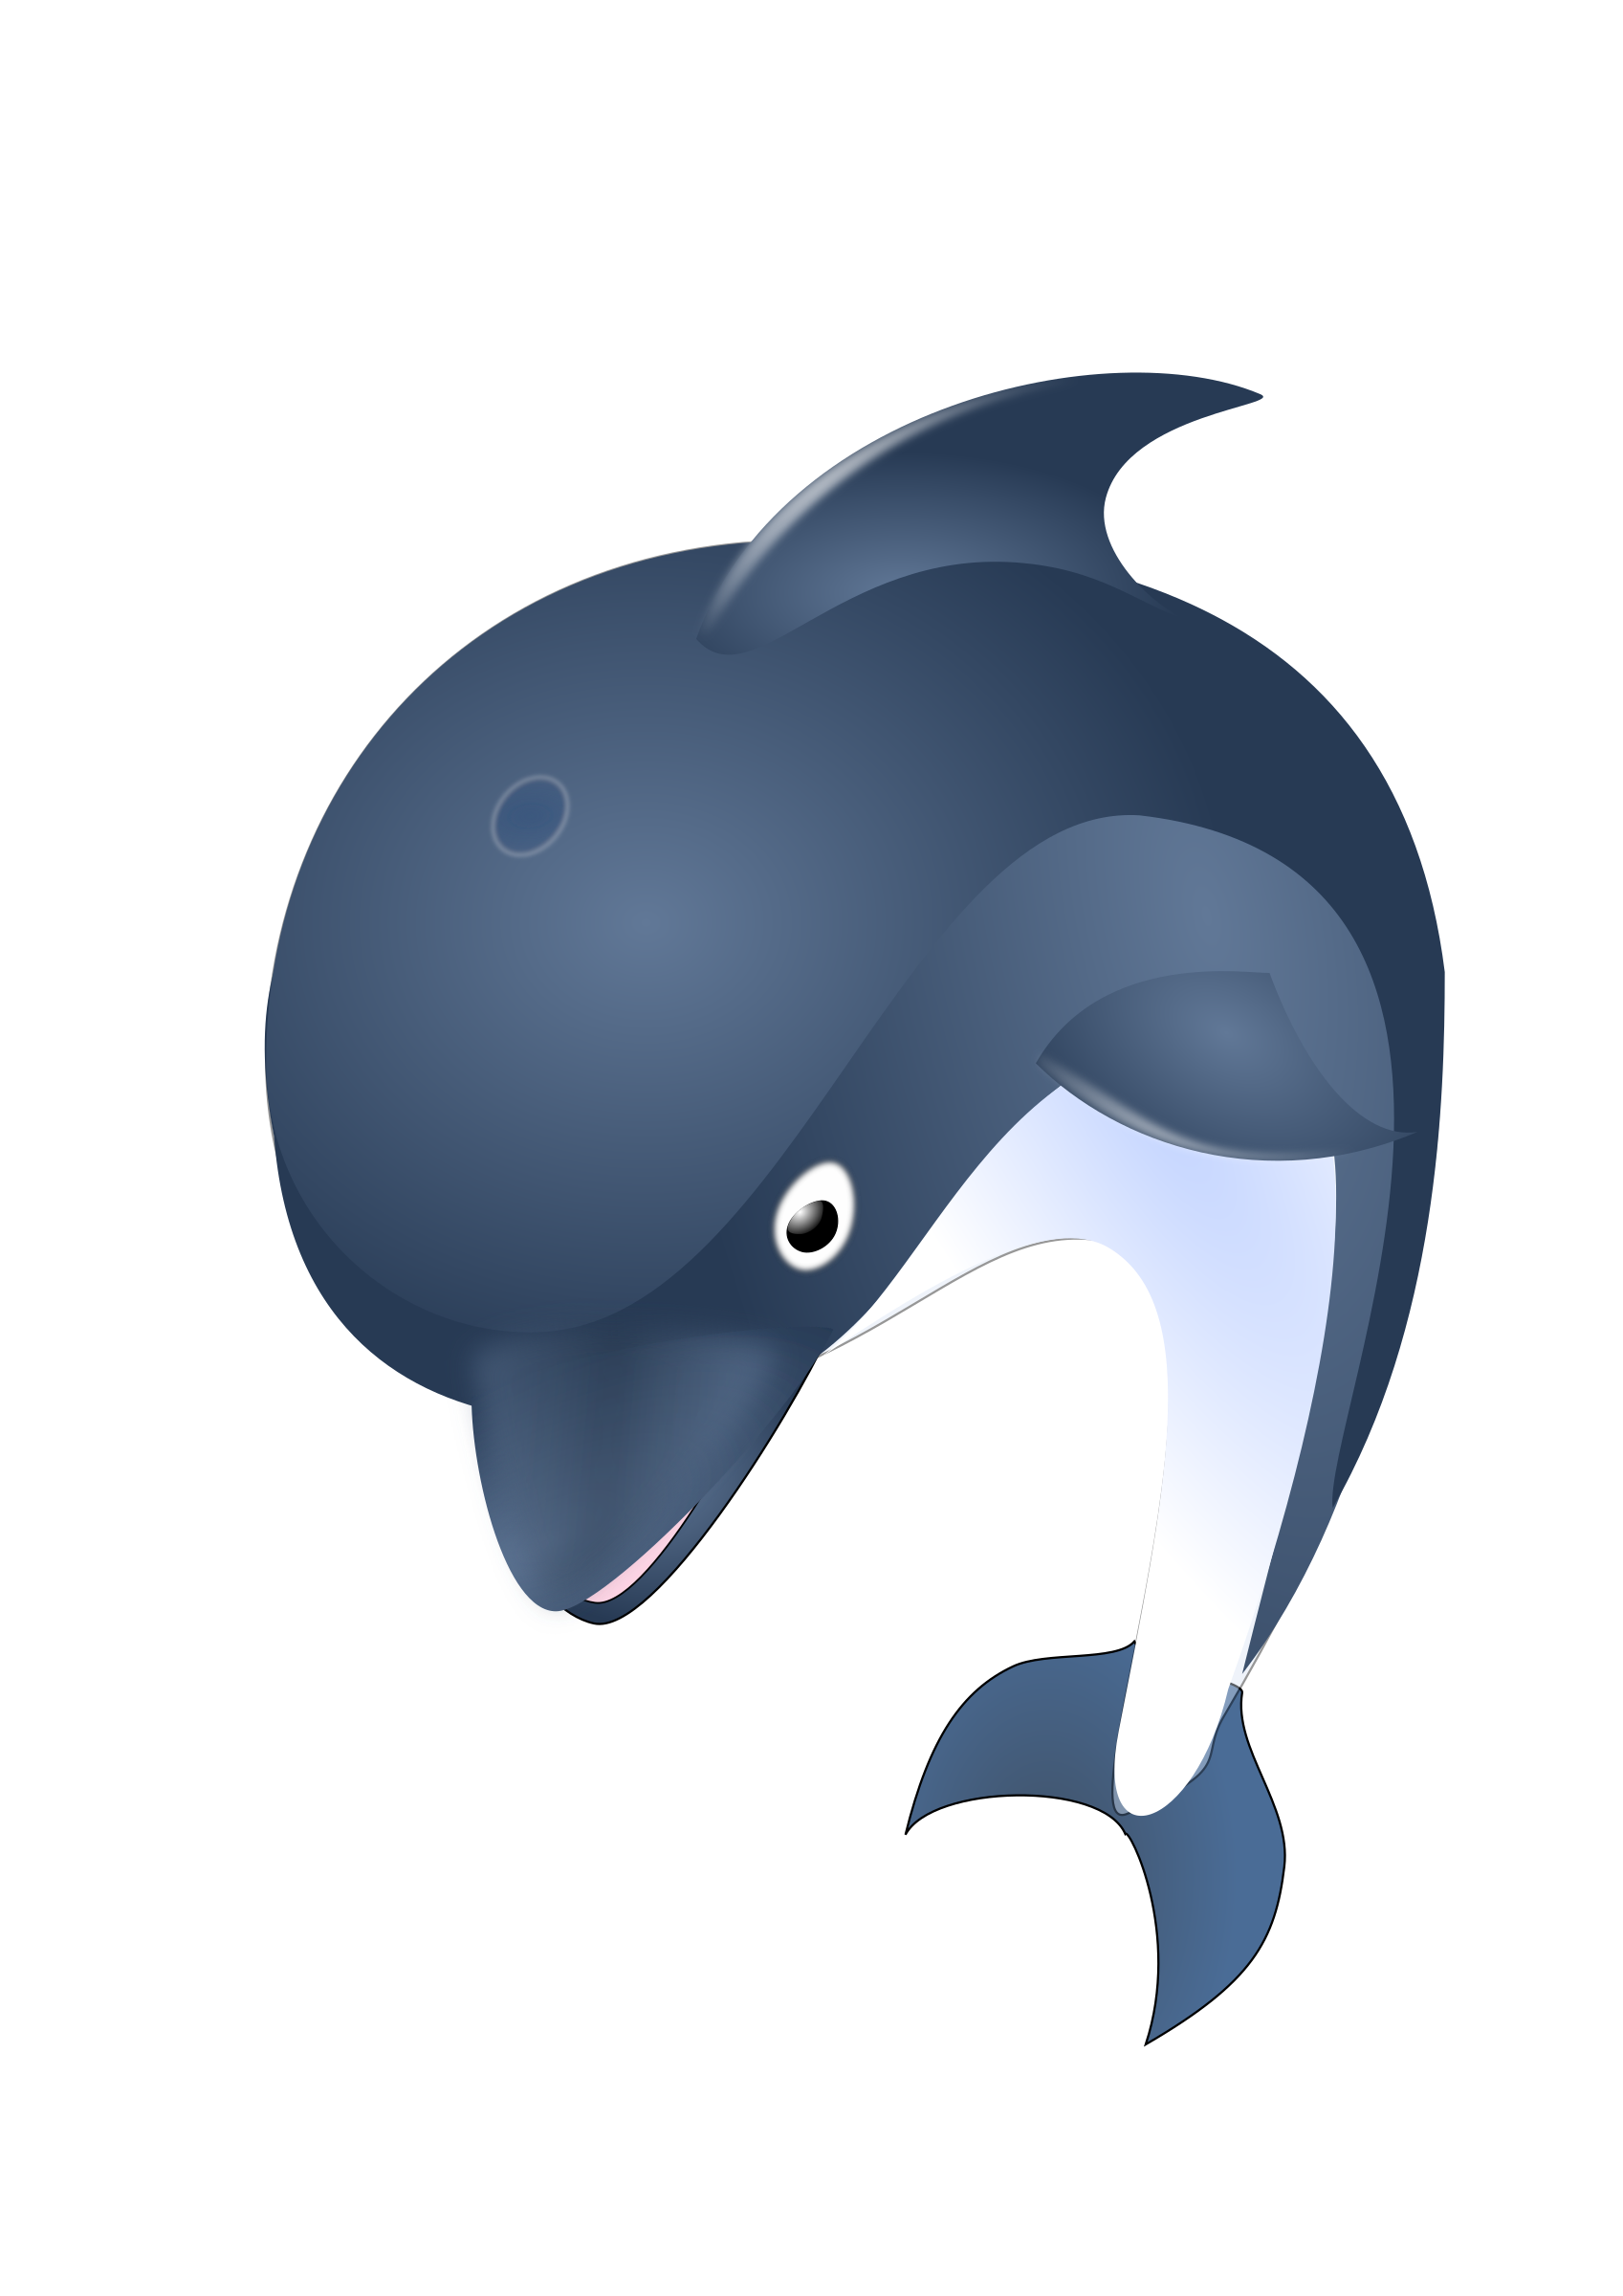 Clipart dolphin diving dolphin. Jumping big image png